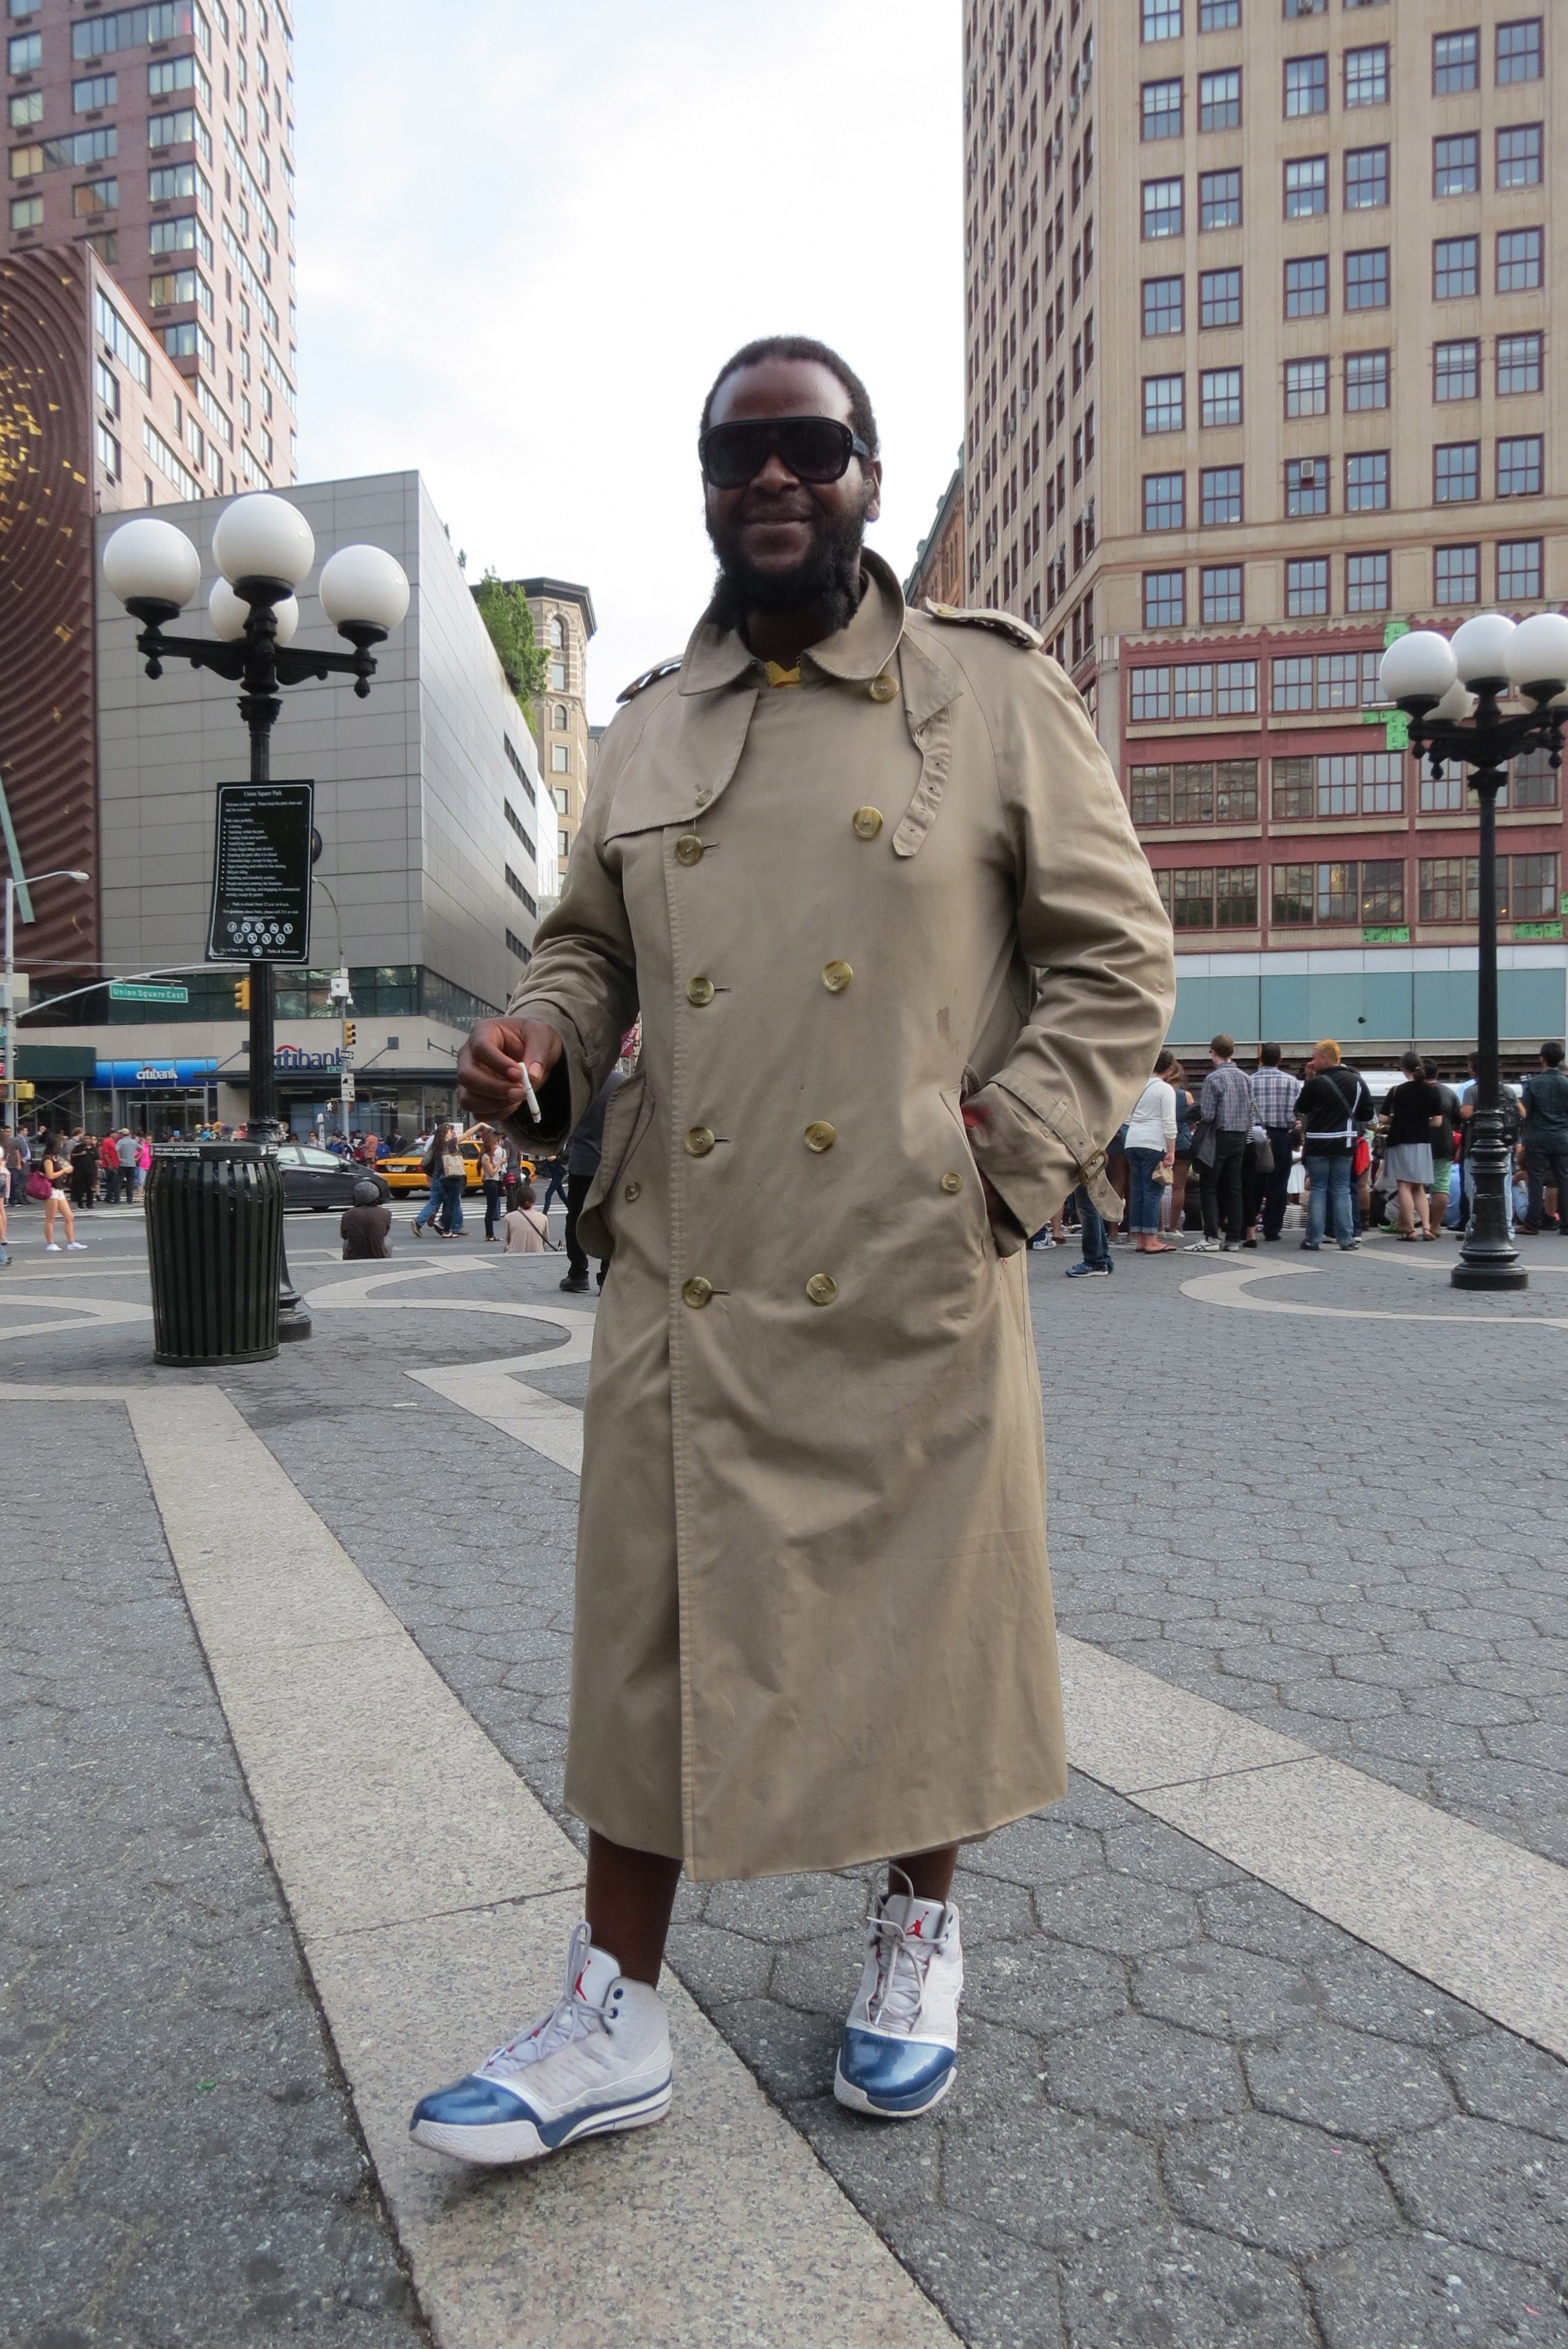 Man poses in overcoat